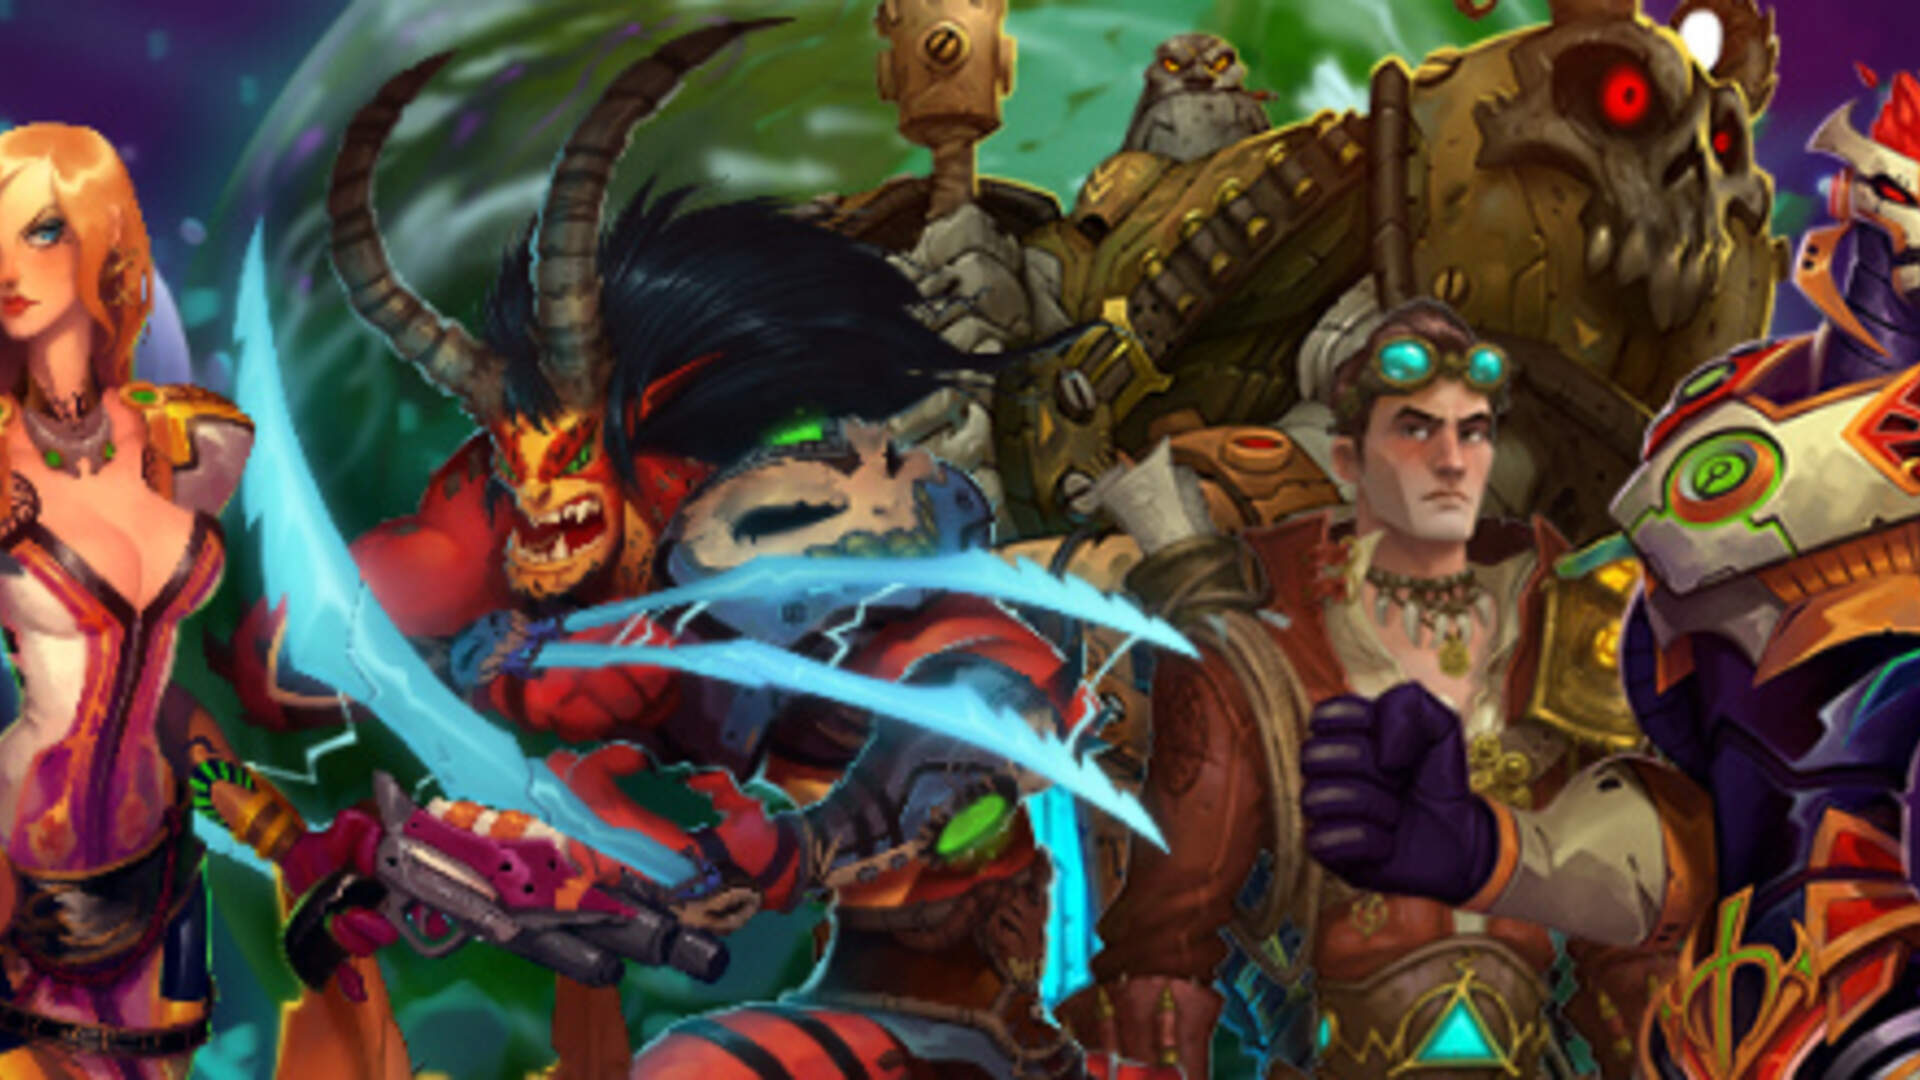 WildStar PC Review: This Planet Revolves Around the Fun